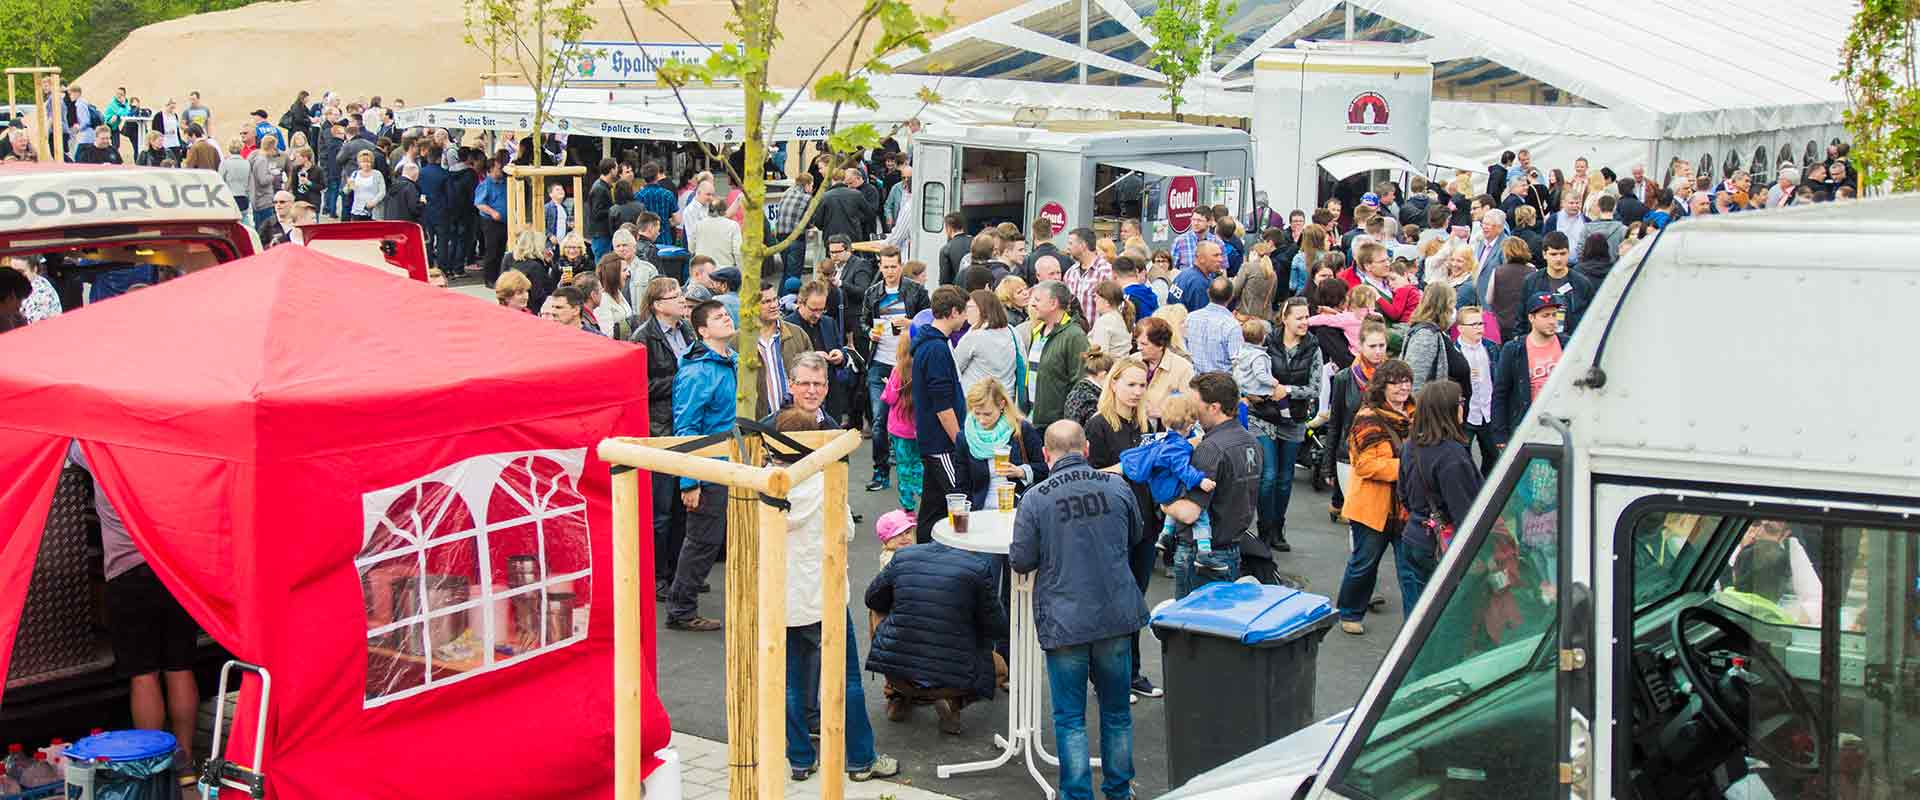 Erfolgreiches Foodtruck Catering bei RIBE